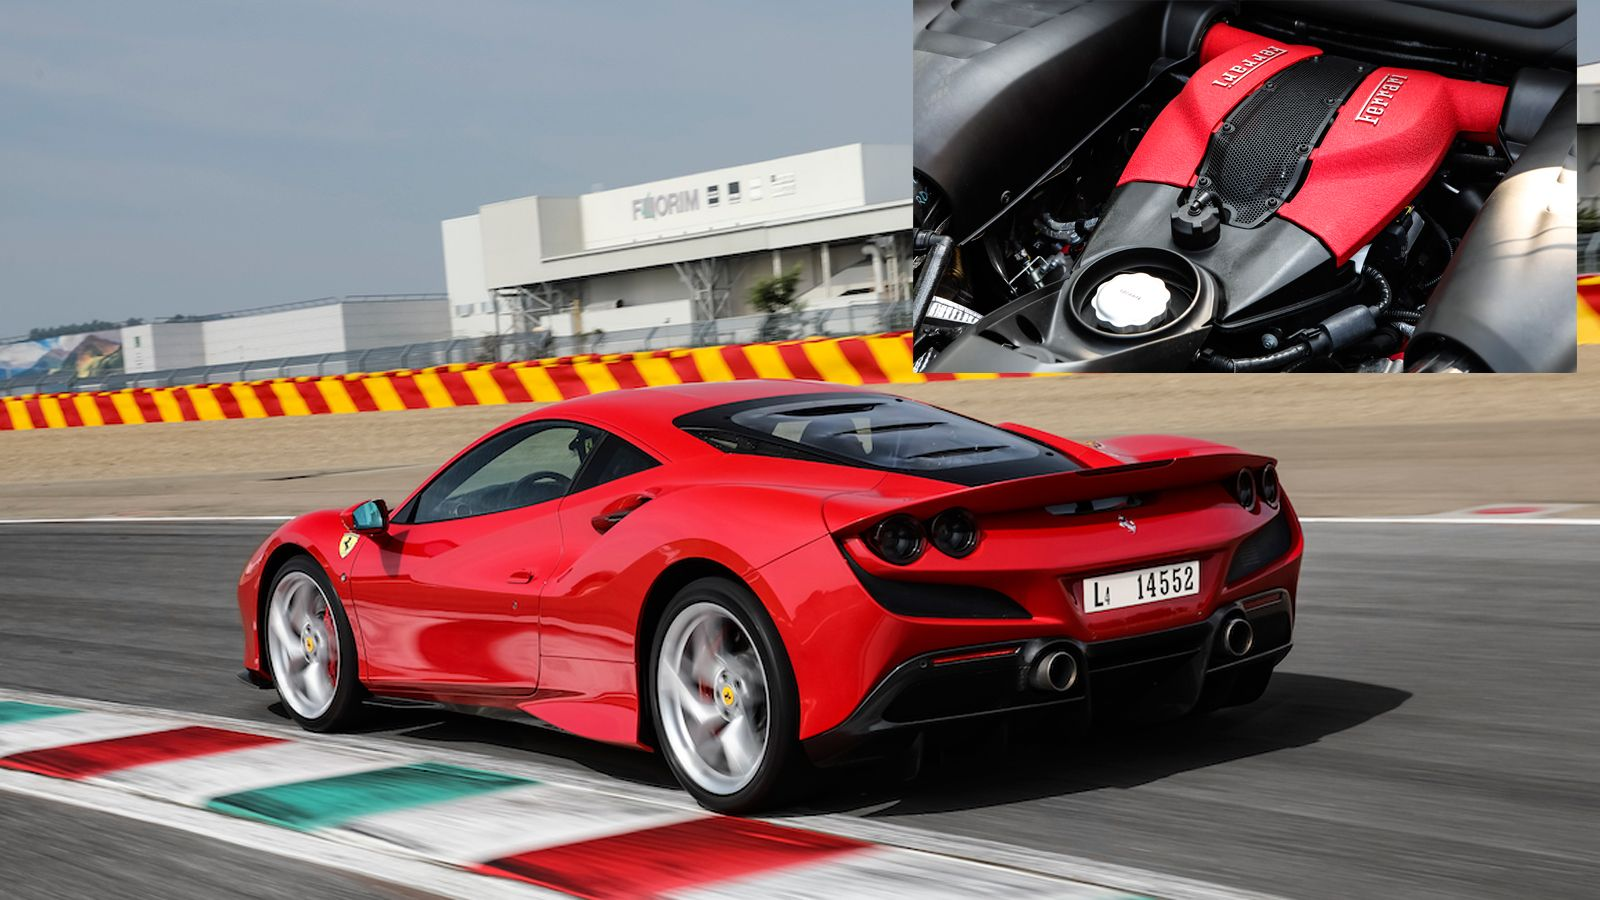 More About The Ferrari F8 Tributo 3 9 Liter Twin Turbocharged V8